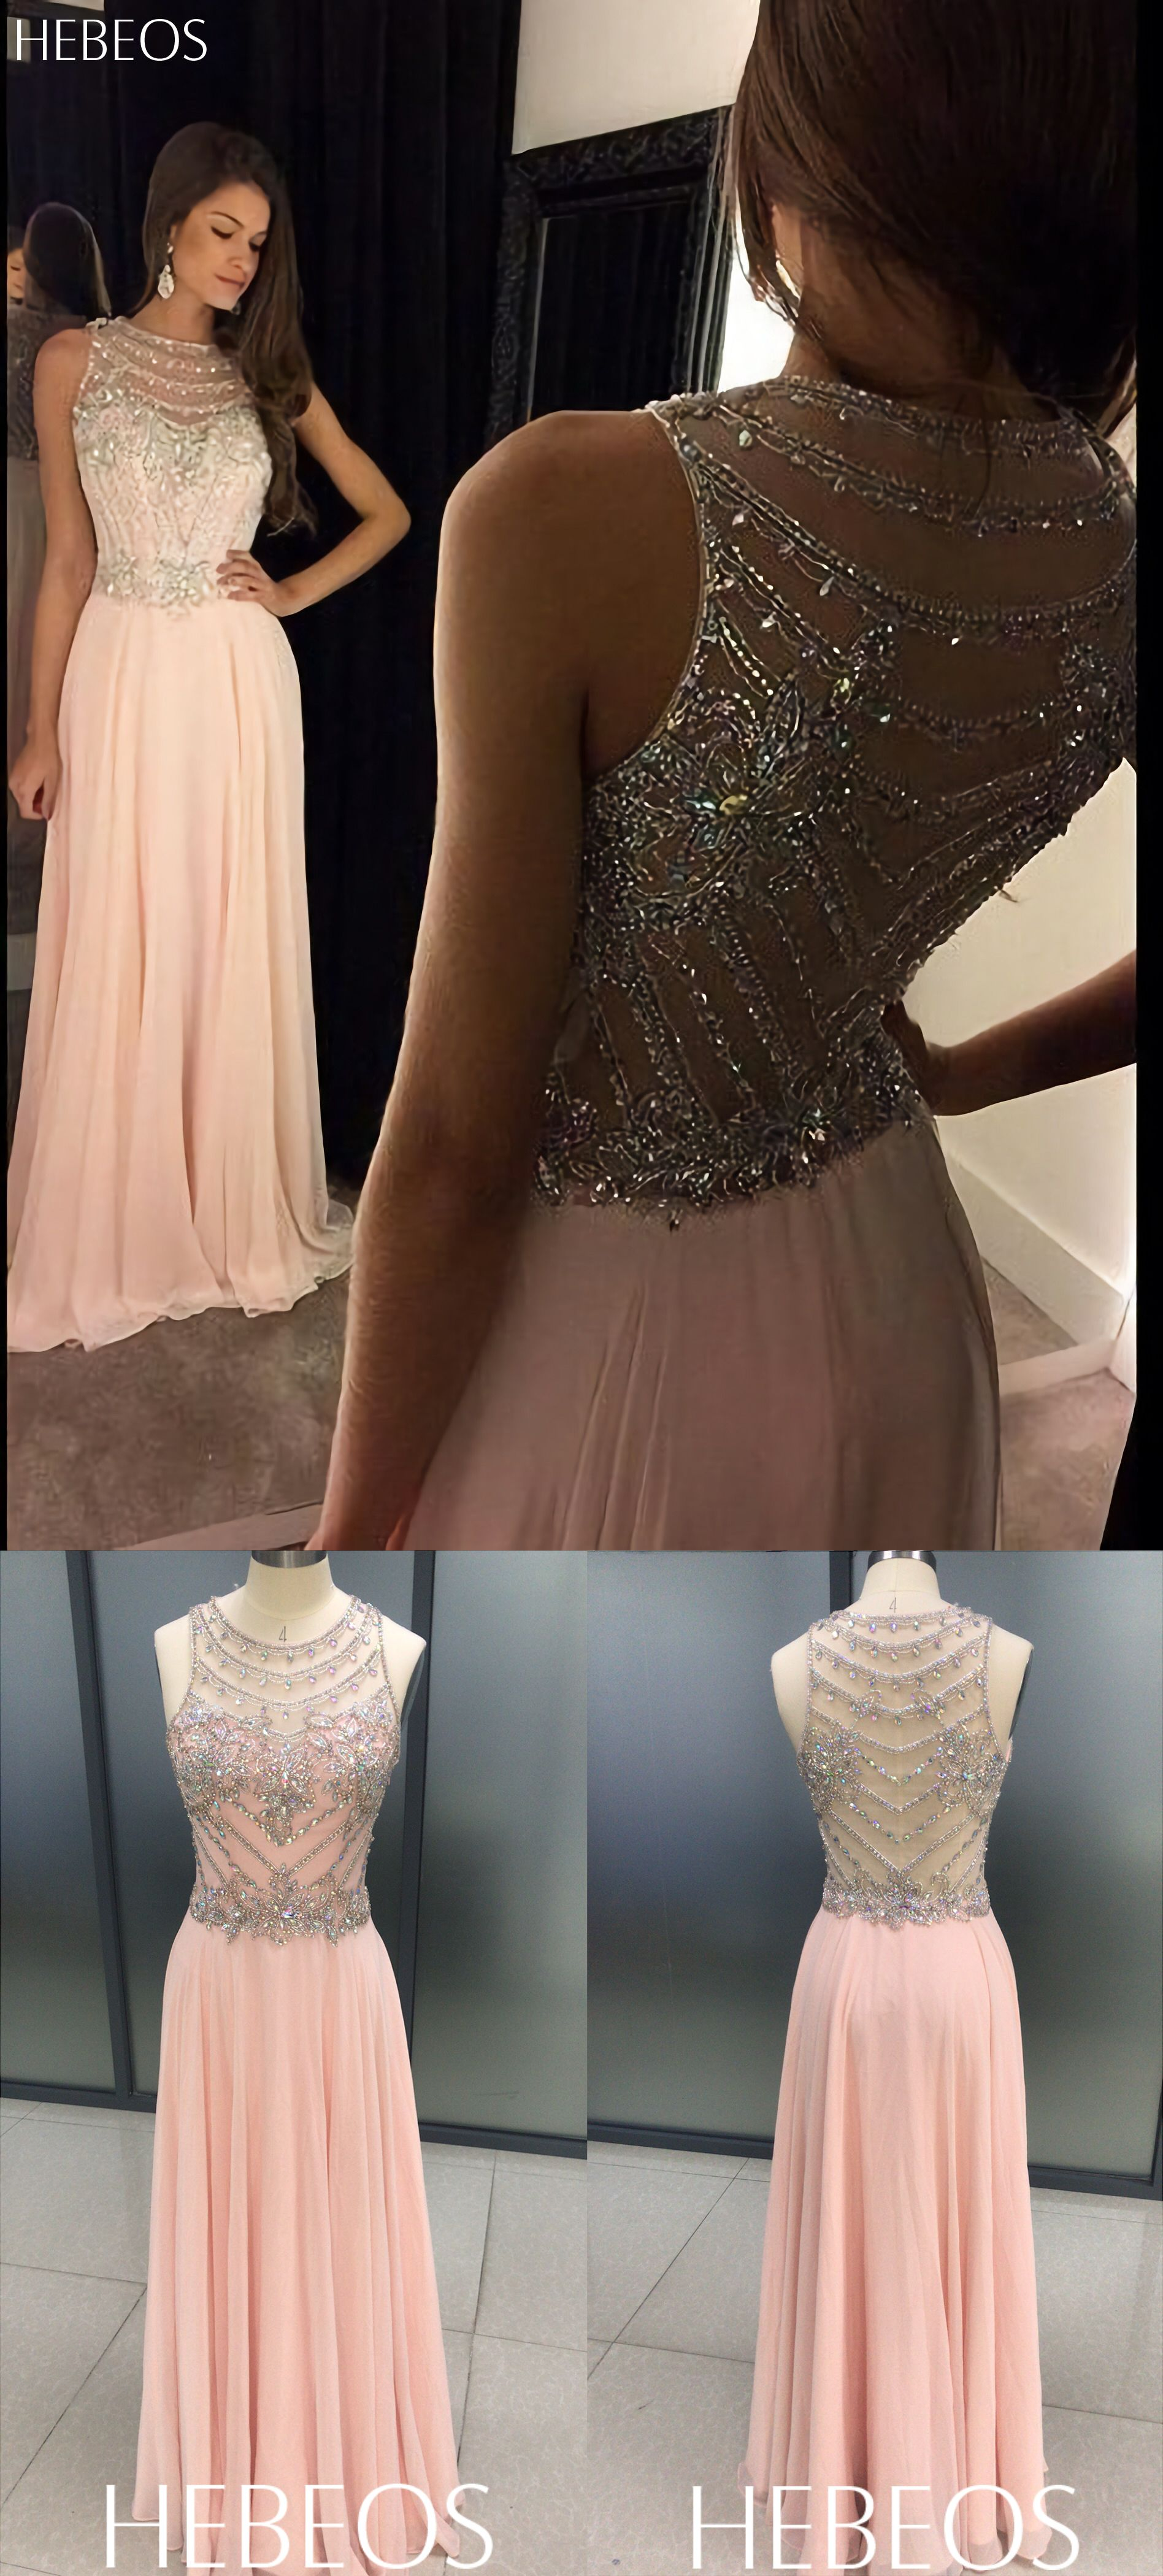 508fd37afcf HEBEOS A-Line Scoop Chiffon Pink Long 2018 Prom Dresses